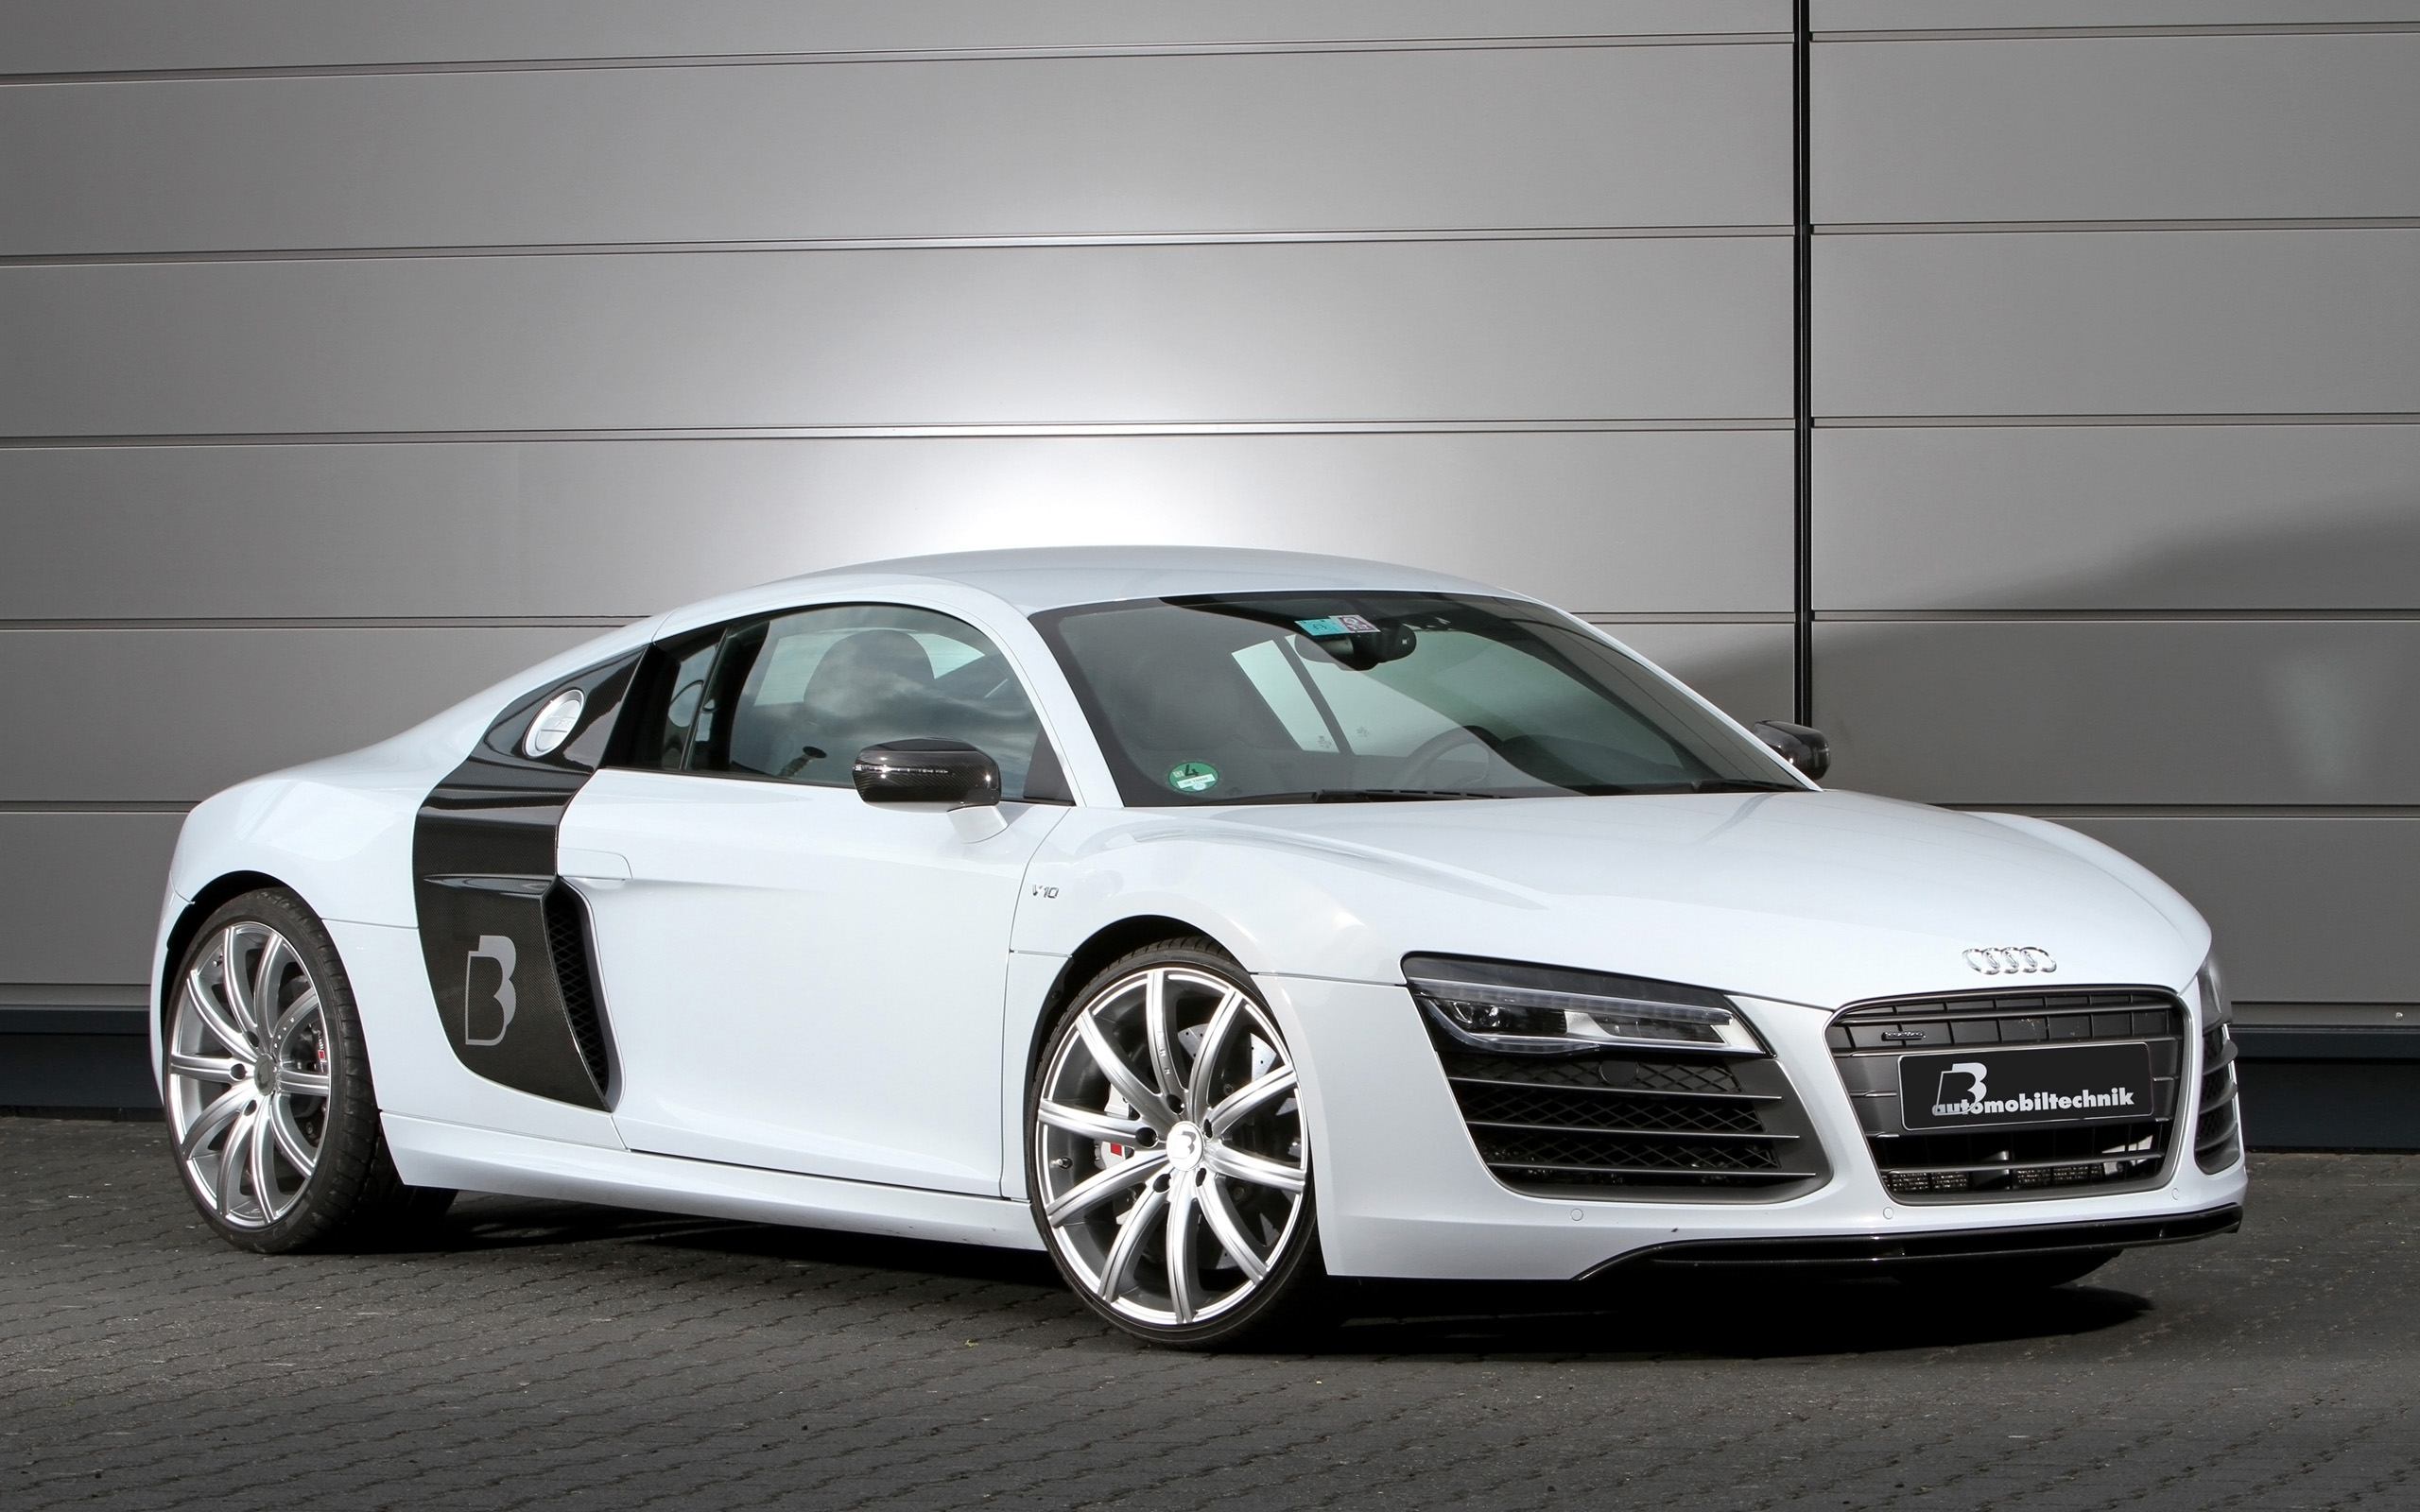 2013 BB Automobiltechnik Audi R8 V10 Plus Wallpaper HD 2560x1600